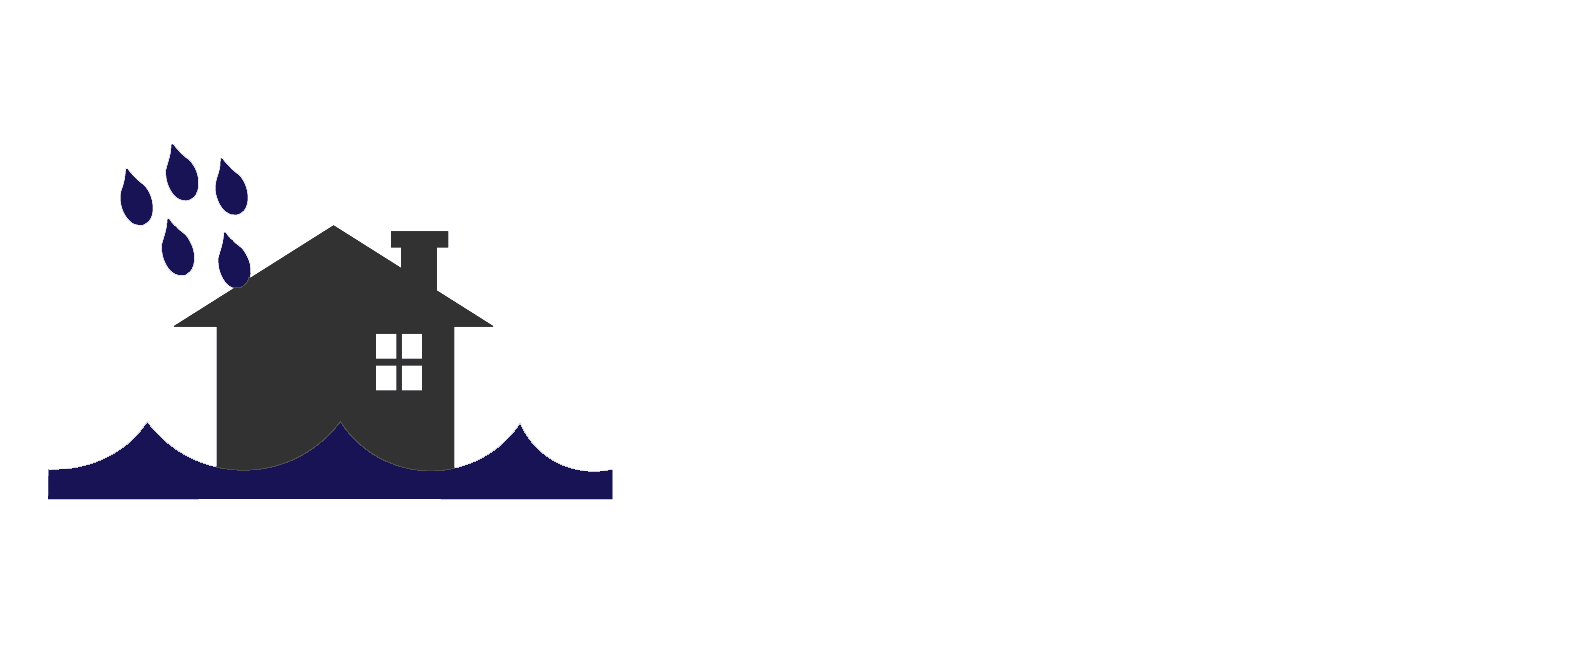 Harrell Adjusting Services